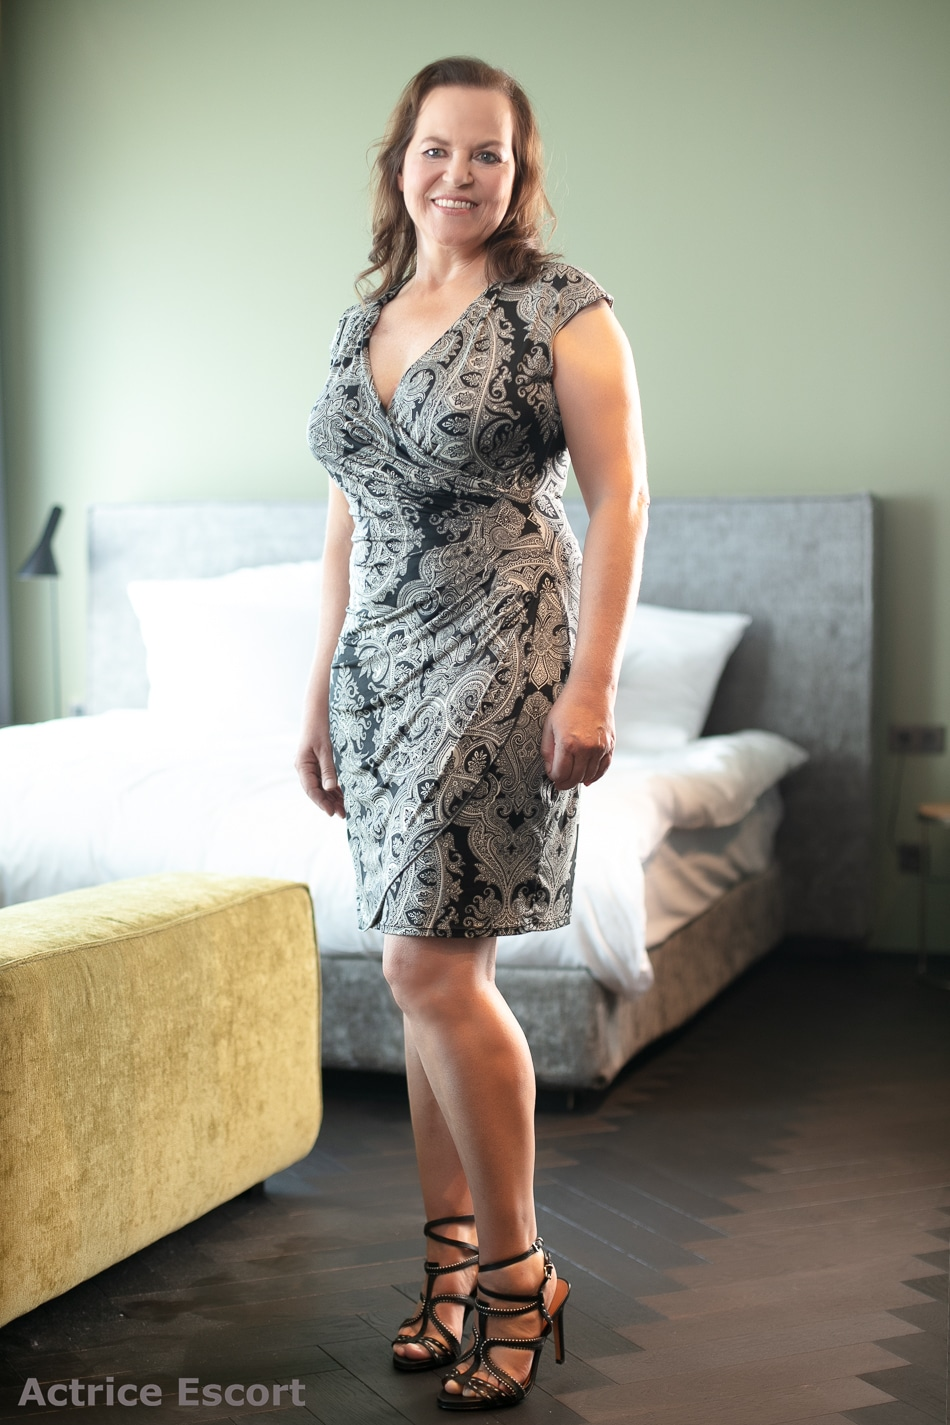 Bettina reife Frau Escortservice Duesseldorf(3)